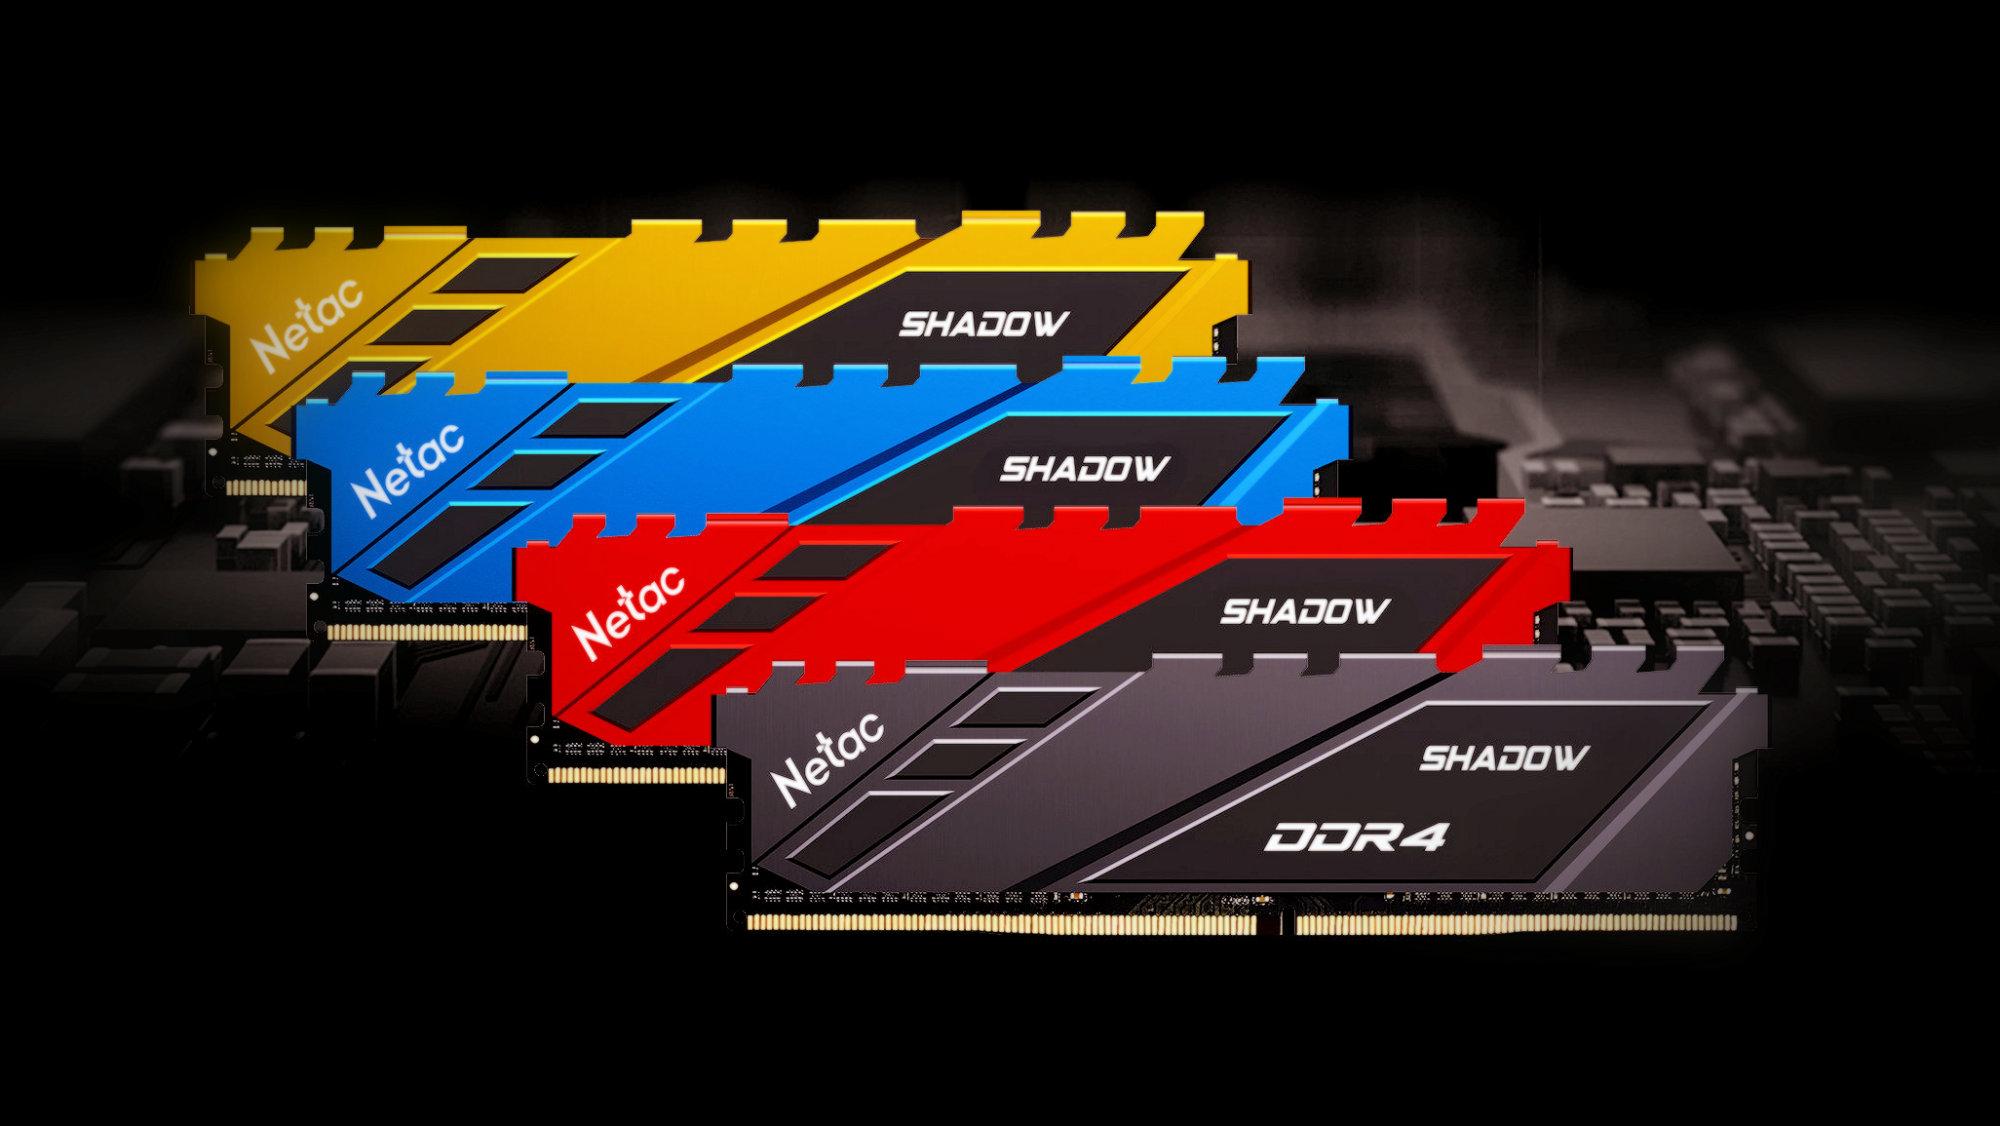 Netac begins research and development phase of 10GHz DDR5 memory – VideoCardz.com